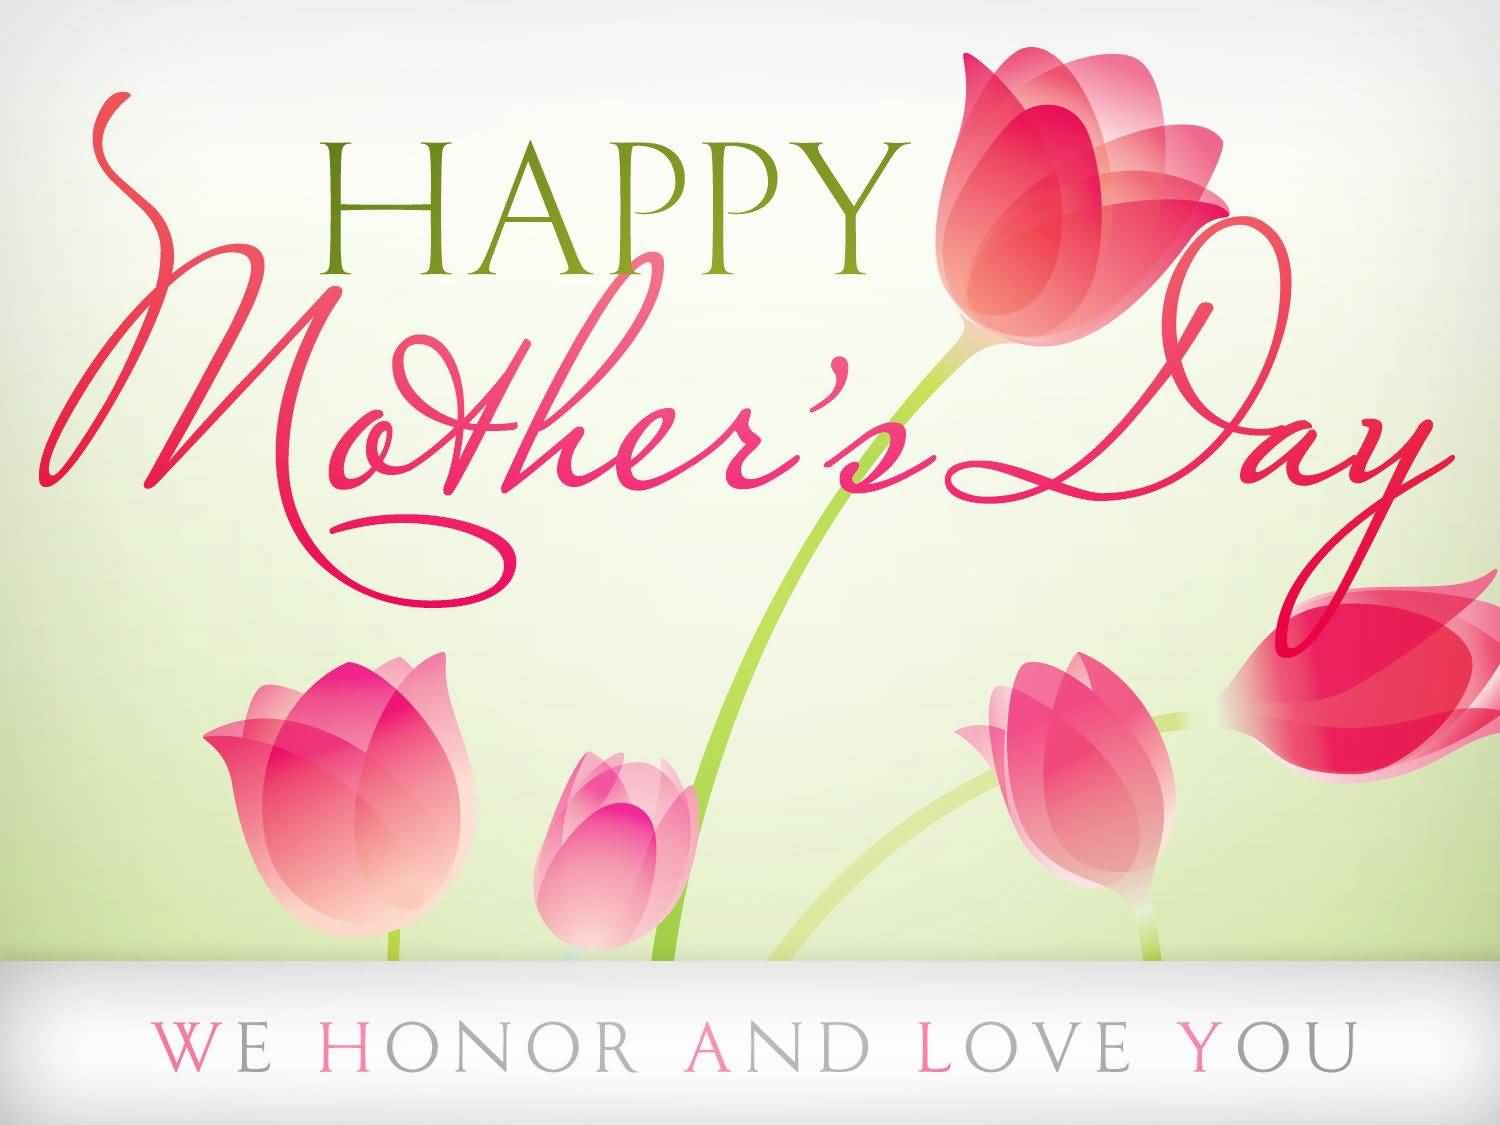 Happy Mothers Day We Honor And Love You Greeting Card